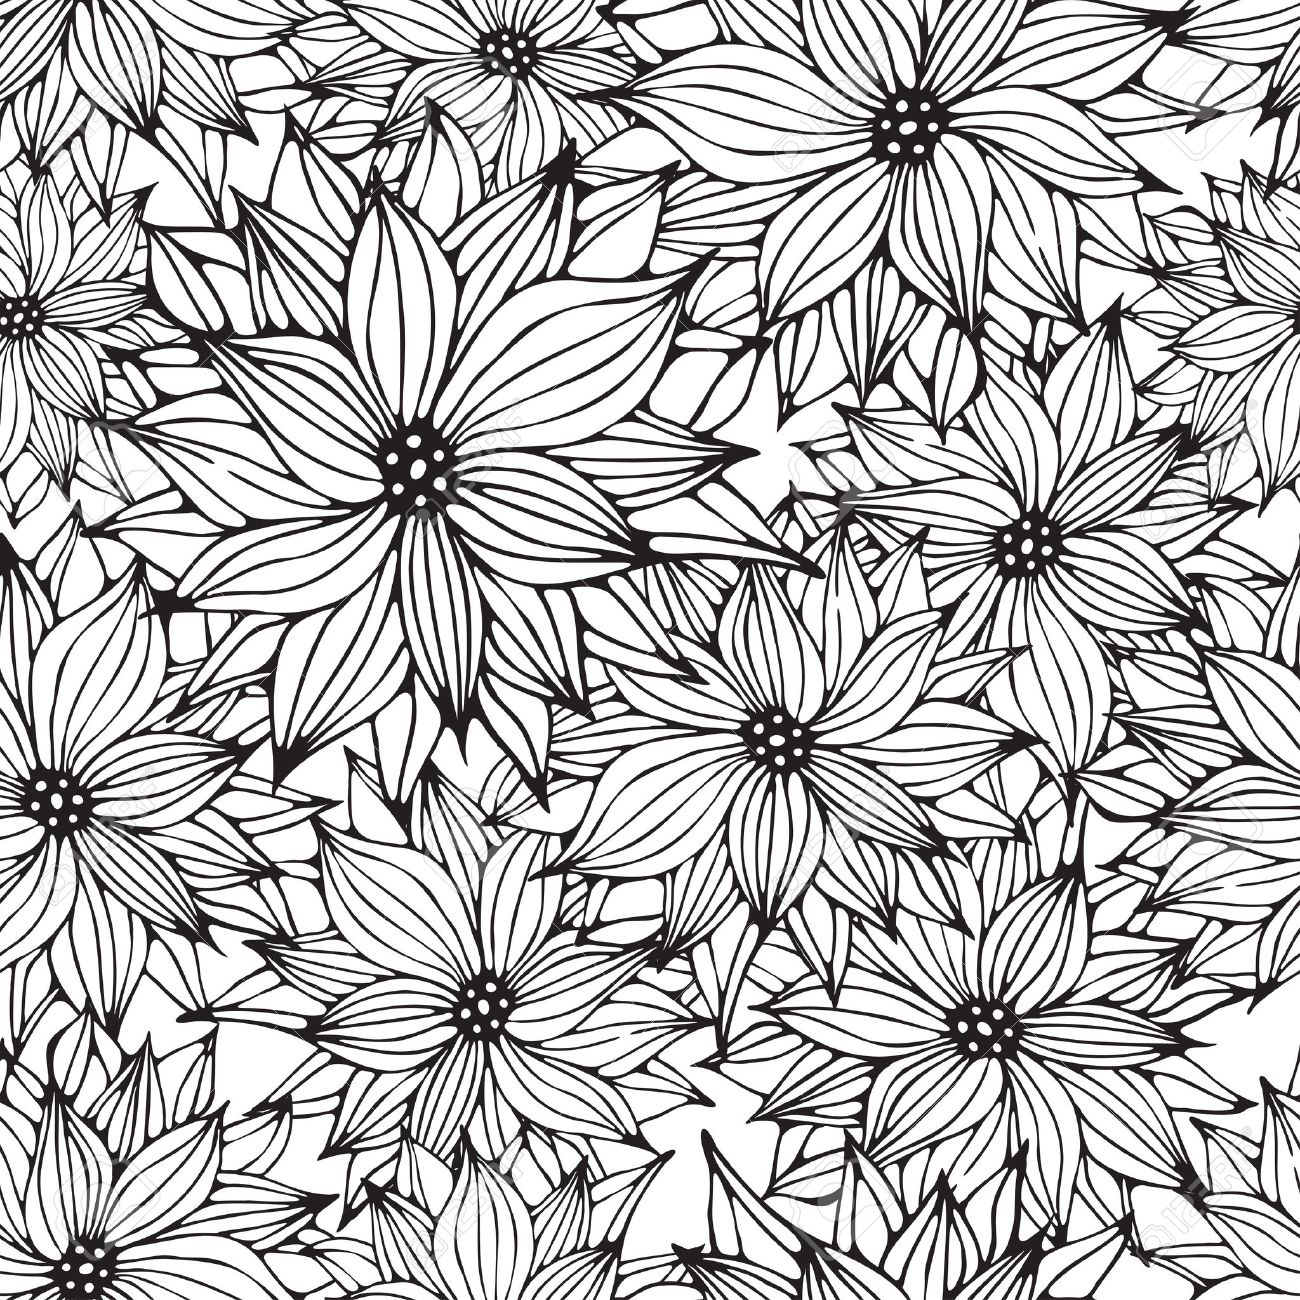 Background designs drawing at getdrawings free for personal 1300x1300 gallery line drawing floral patterns mightylinksfo